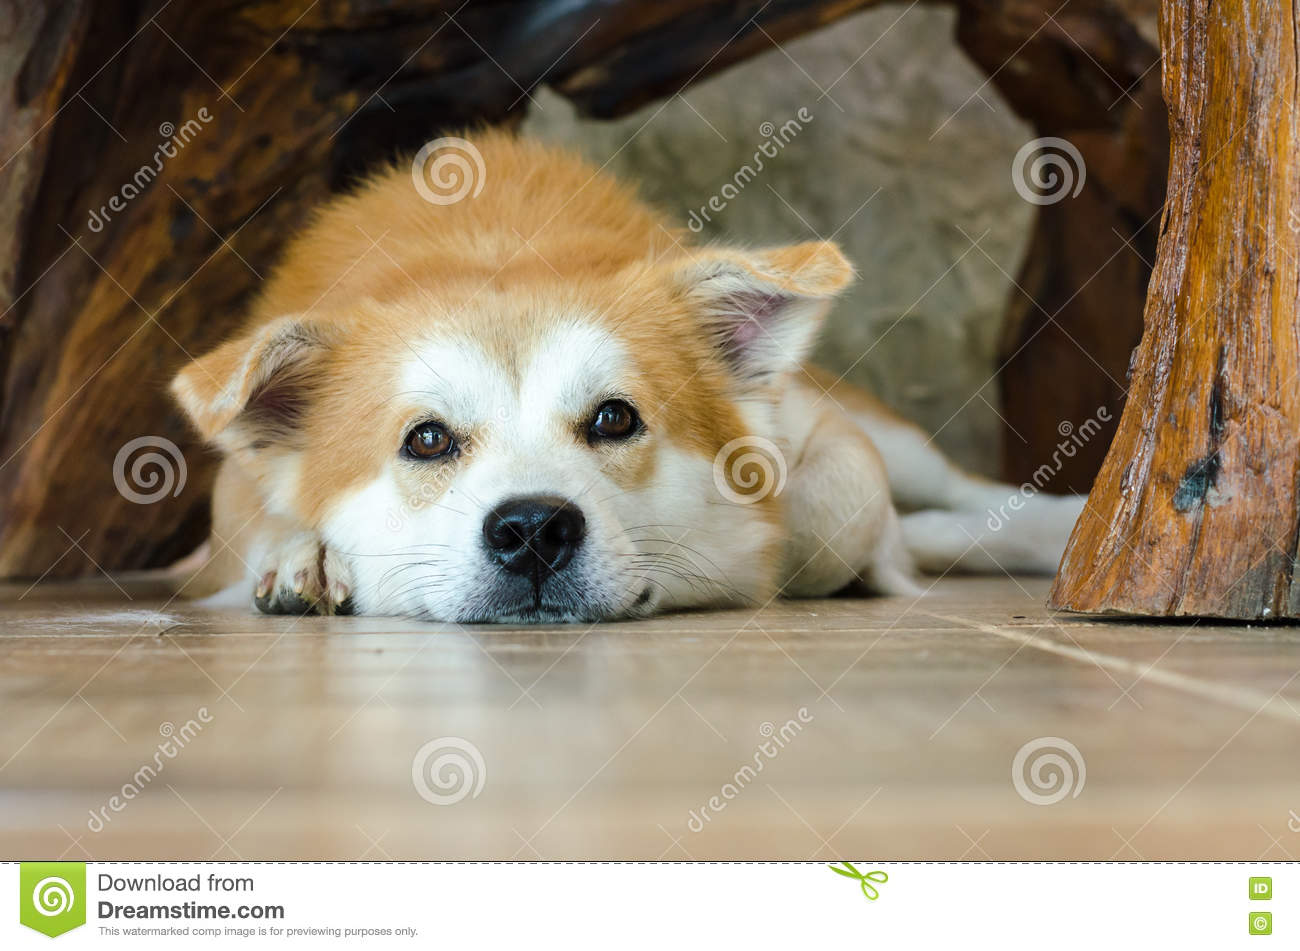 Download Close-up Face Of Cute Brown Dog Lying On Floor Stock Photo - Image of floor, dreams: 80007070